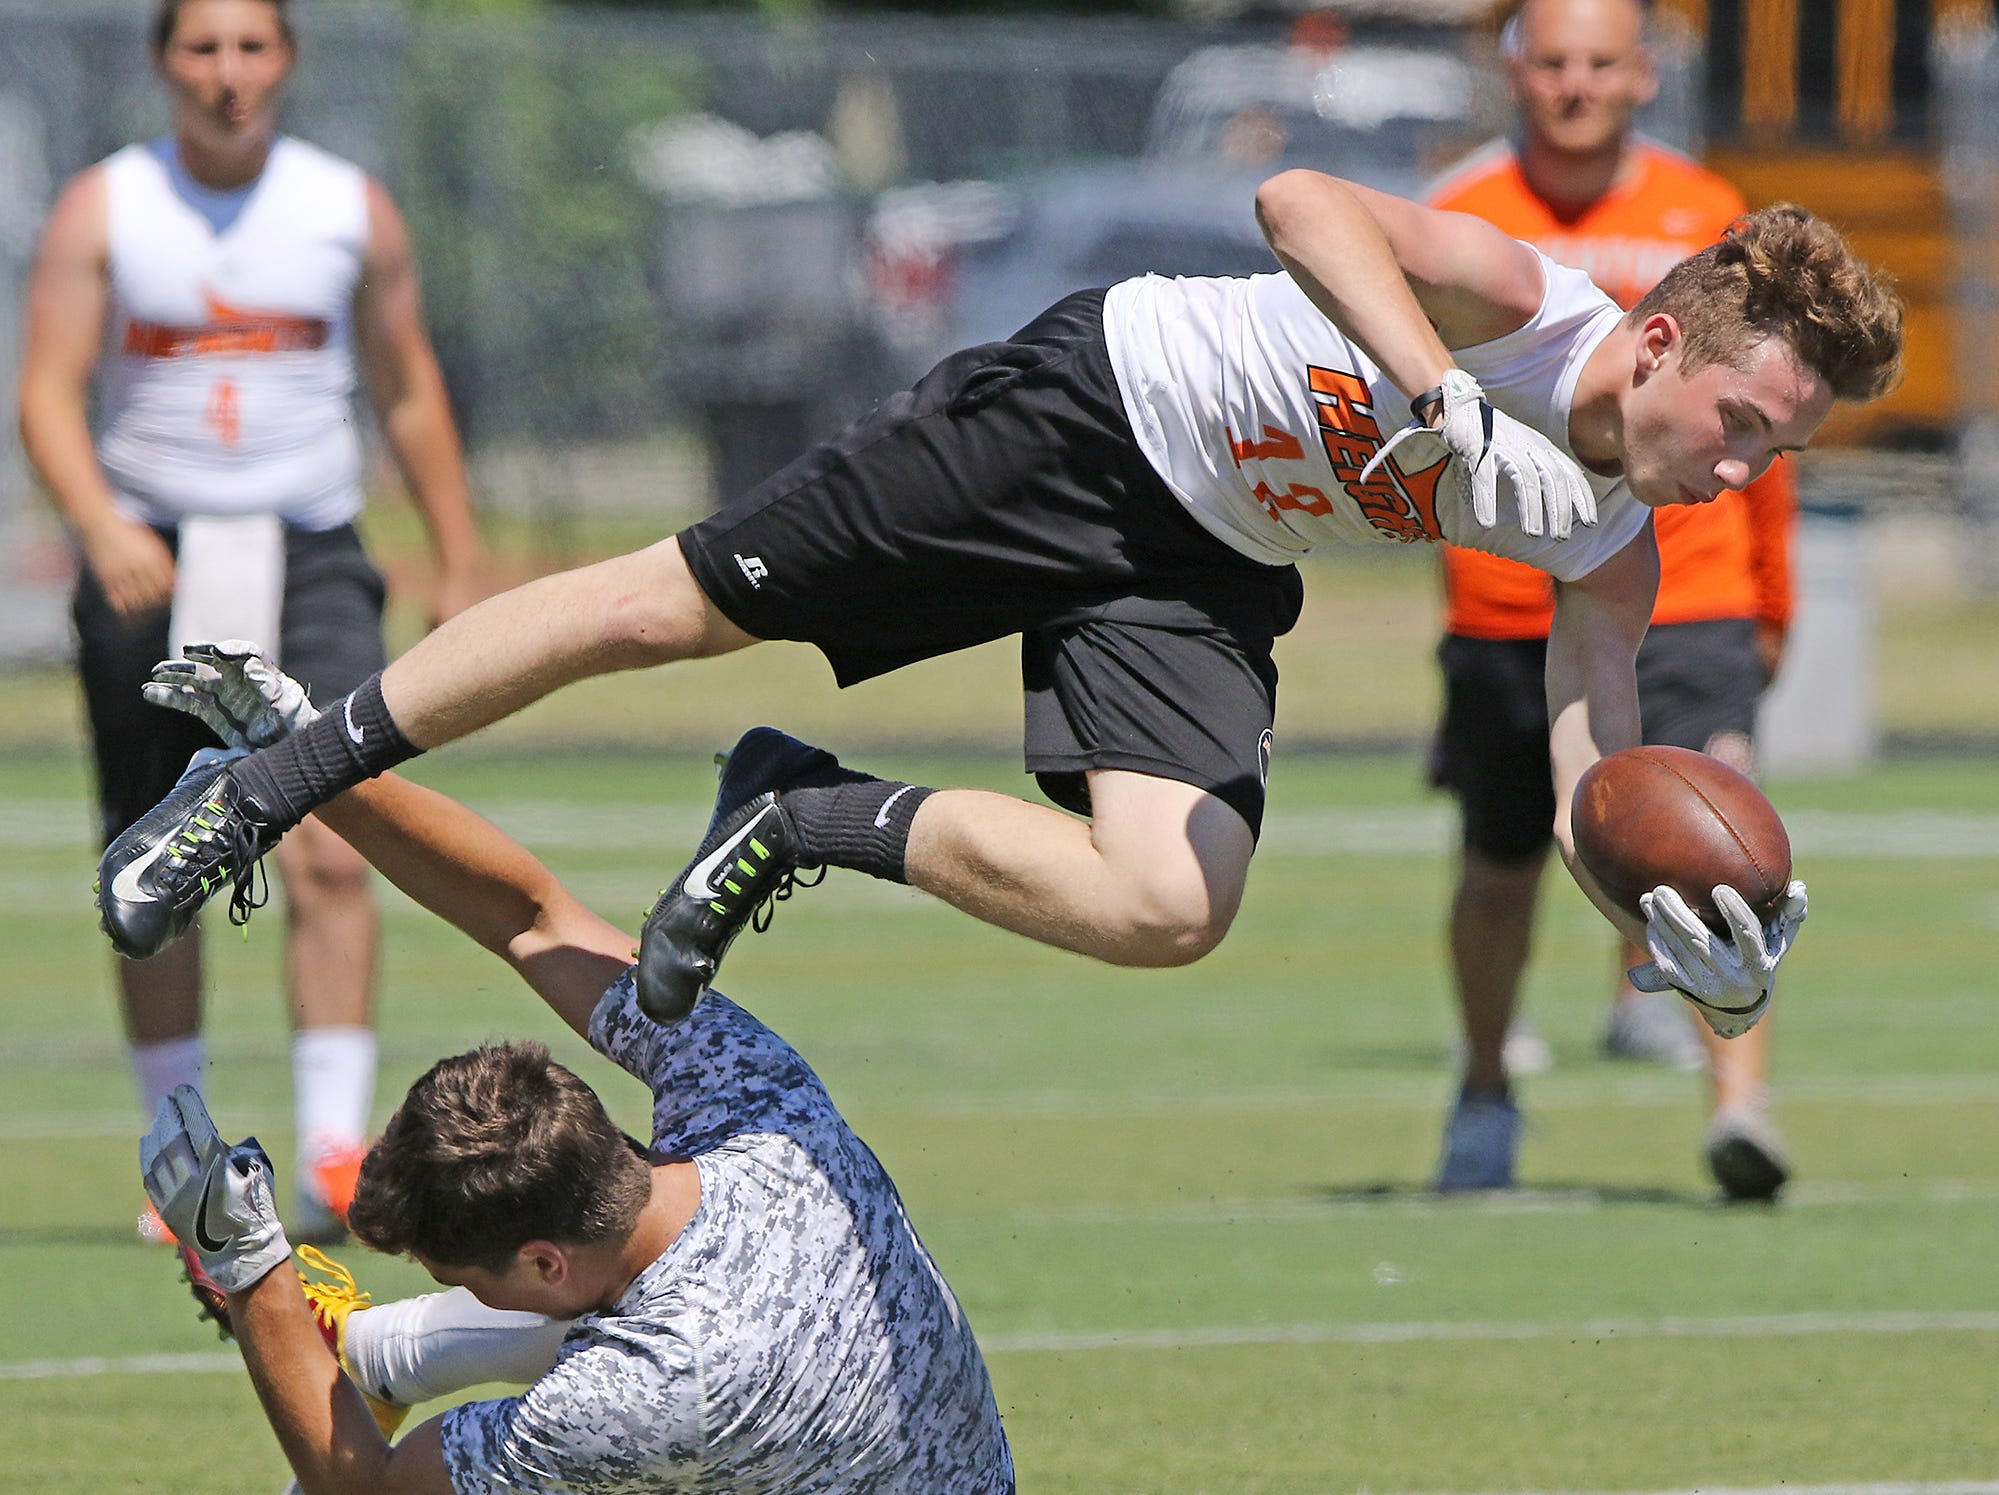 Dylan Grisase of Hasbrouck Heights is upended after making this catch in the championship game against Park Ridge.Pedota POY 2018